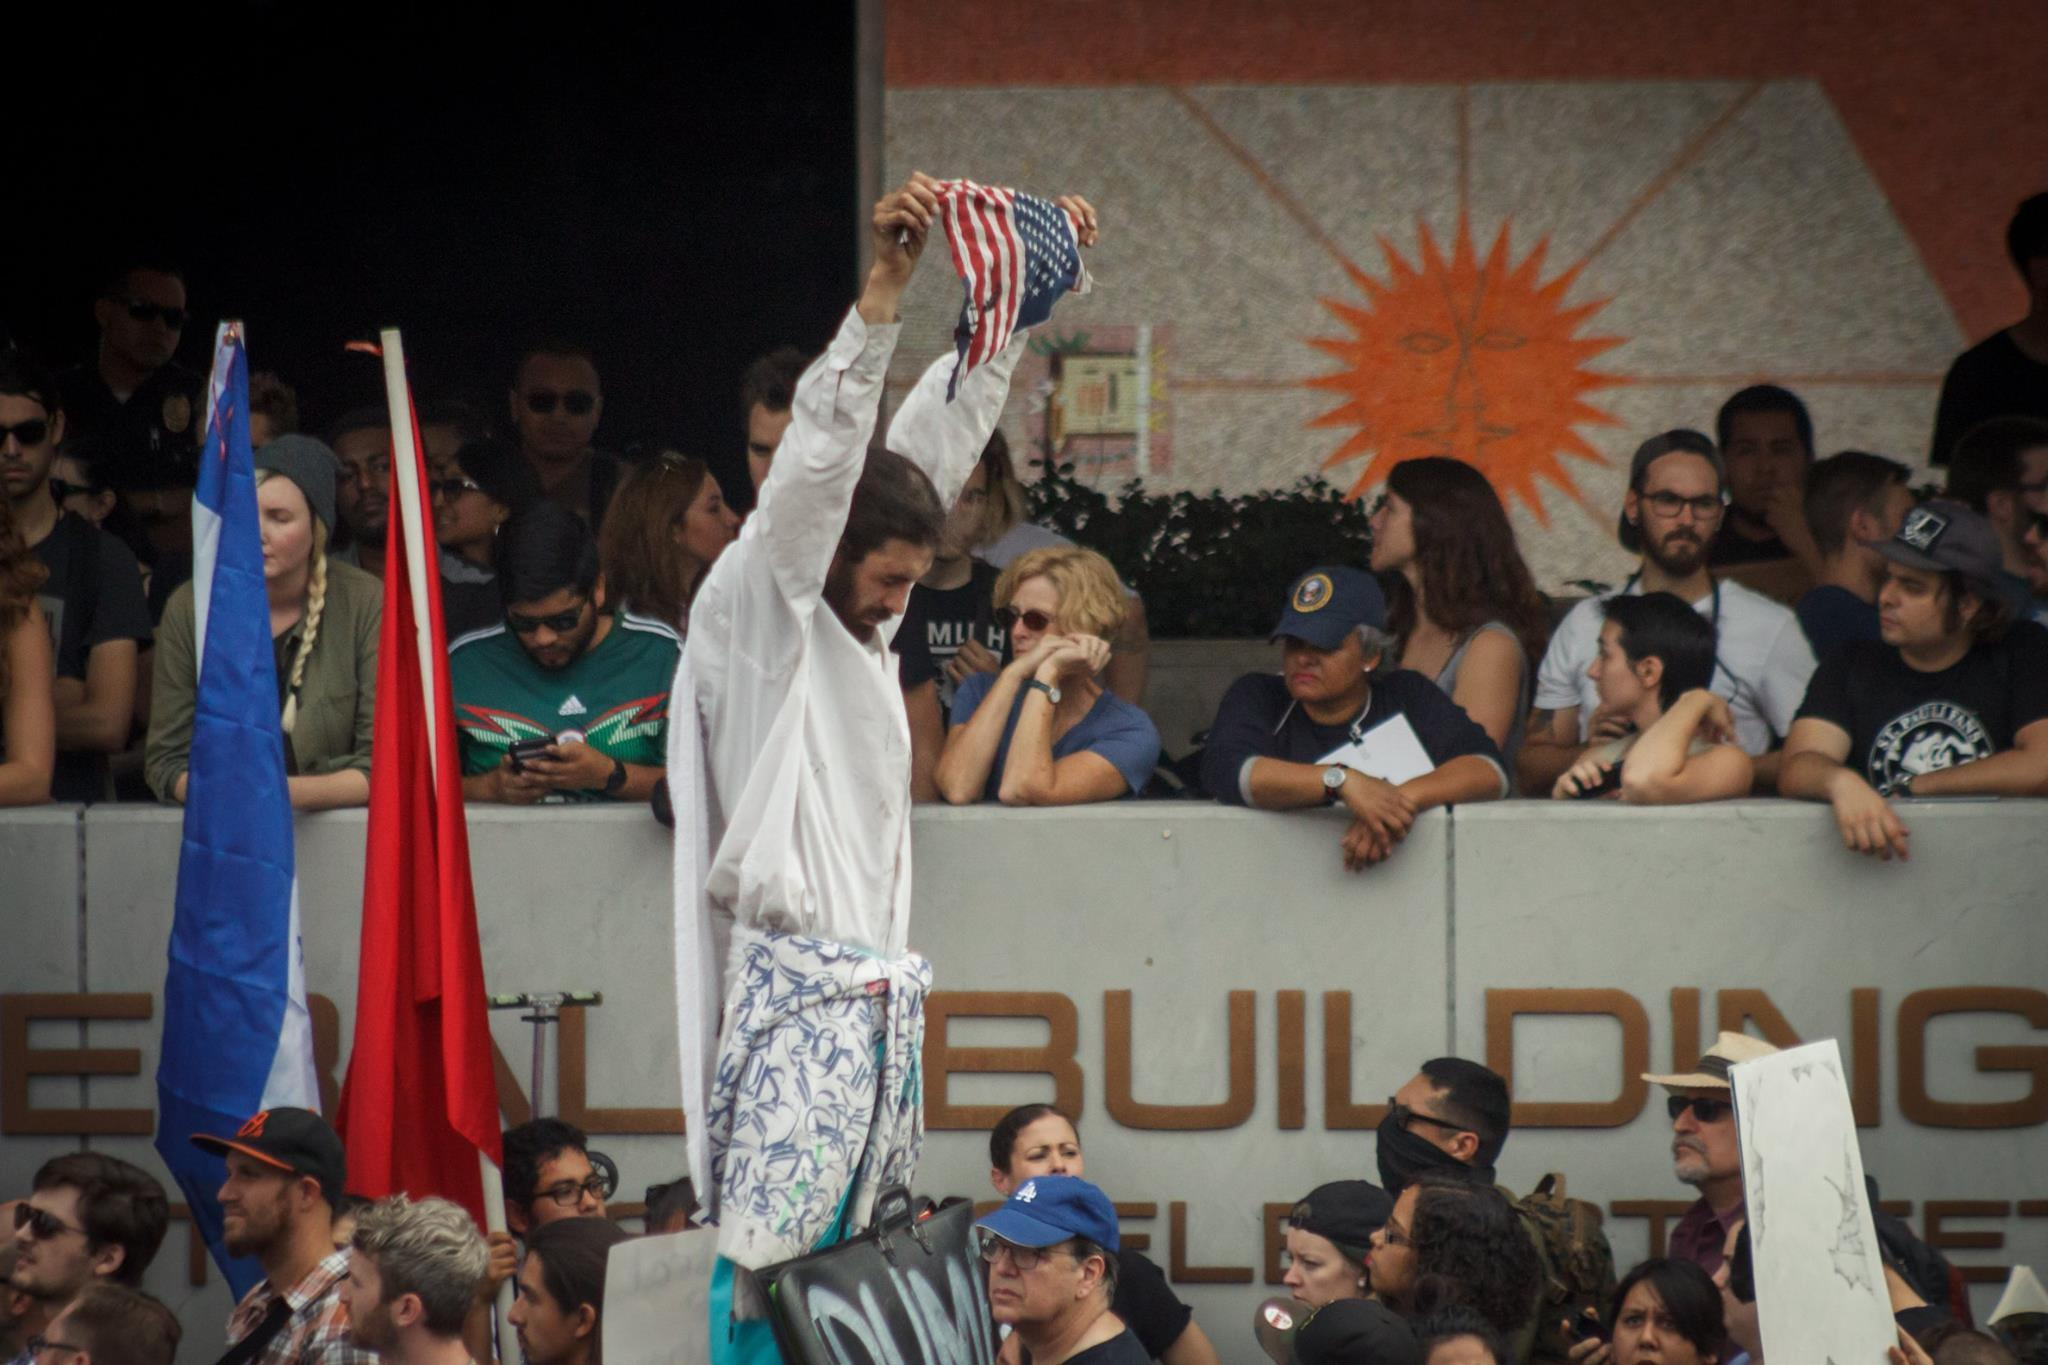 One man standing above a group of protesters holds up the American flag